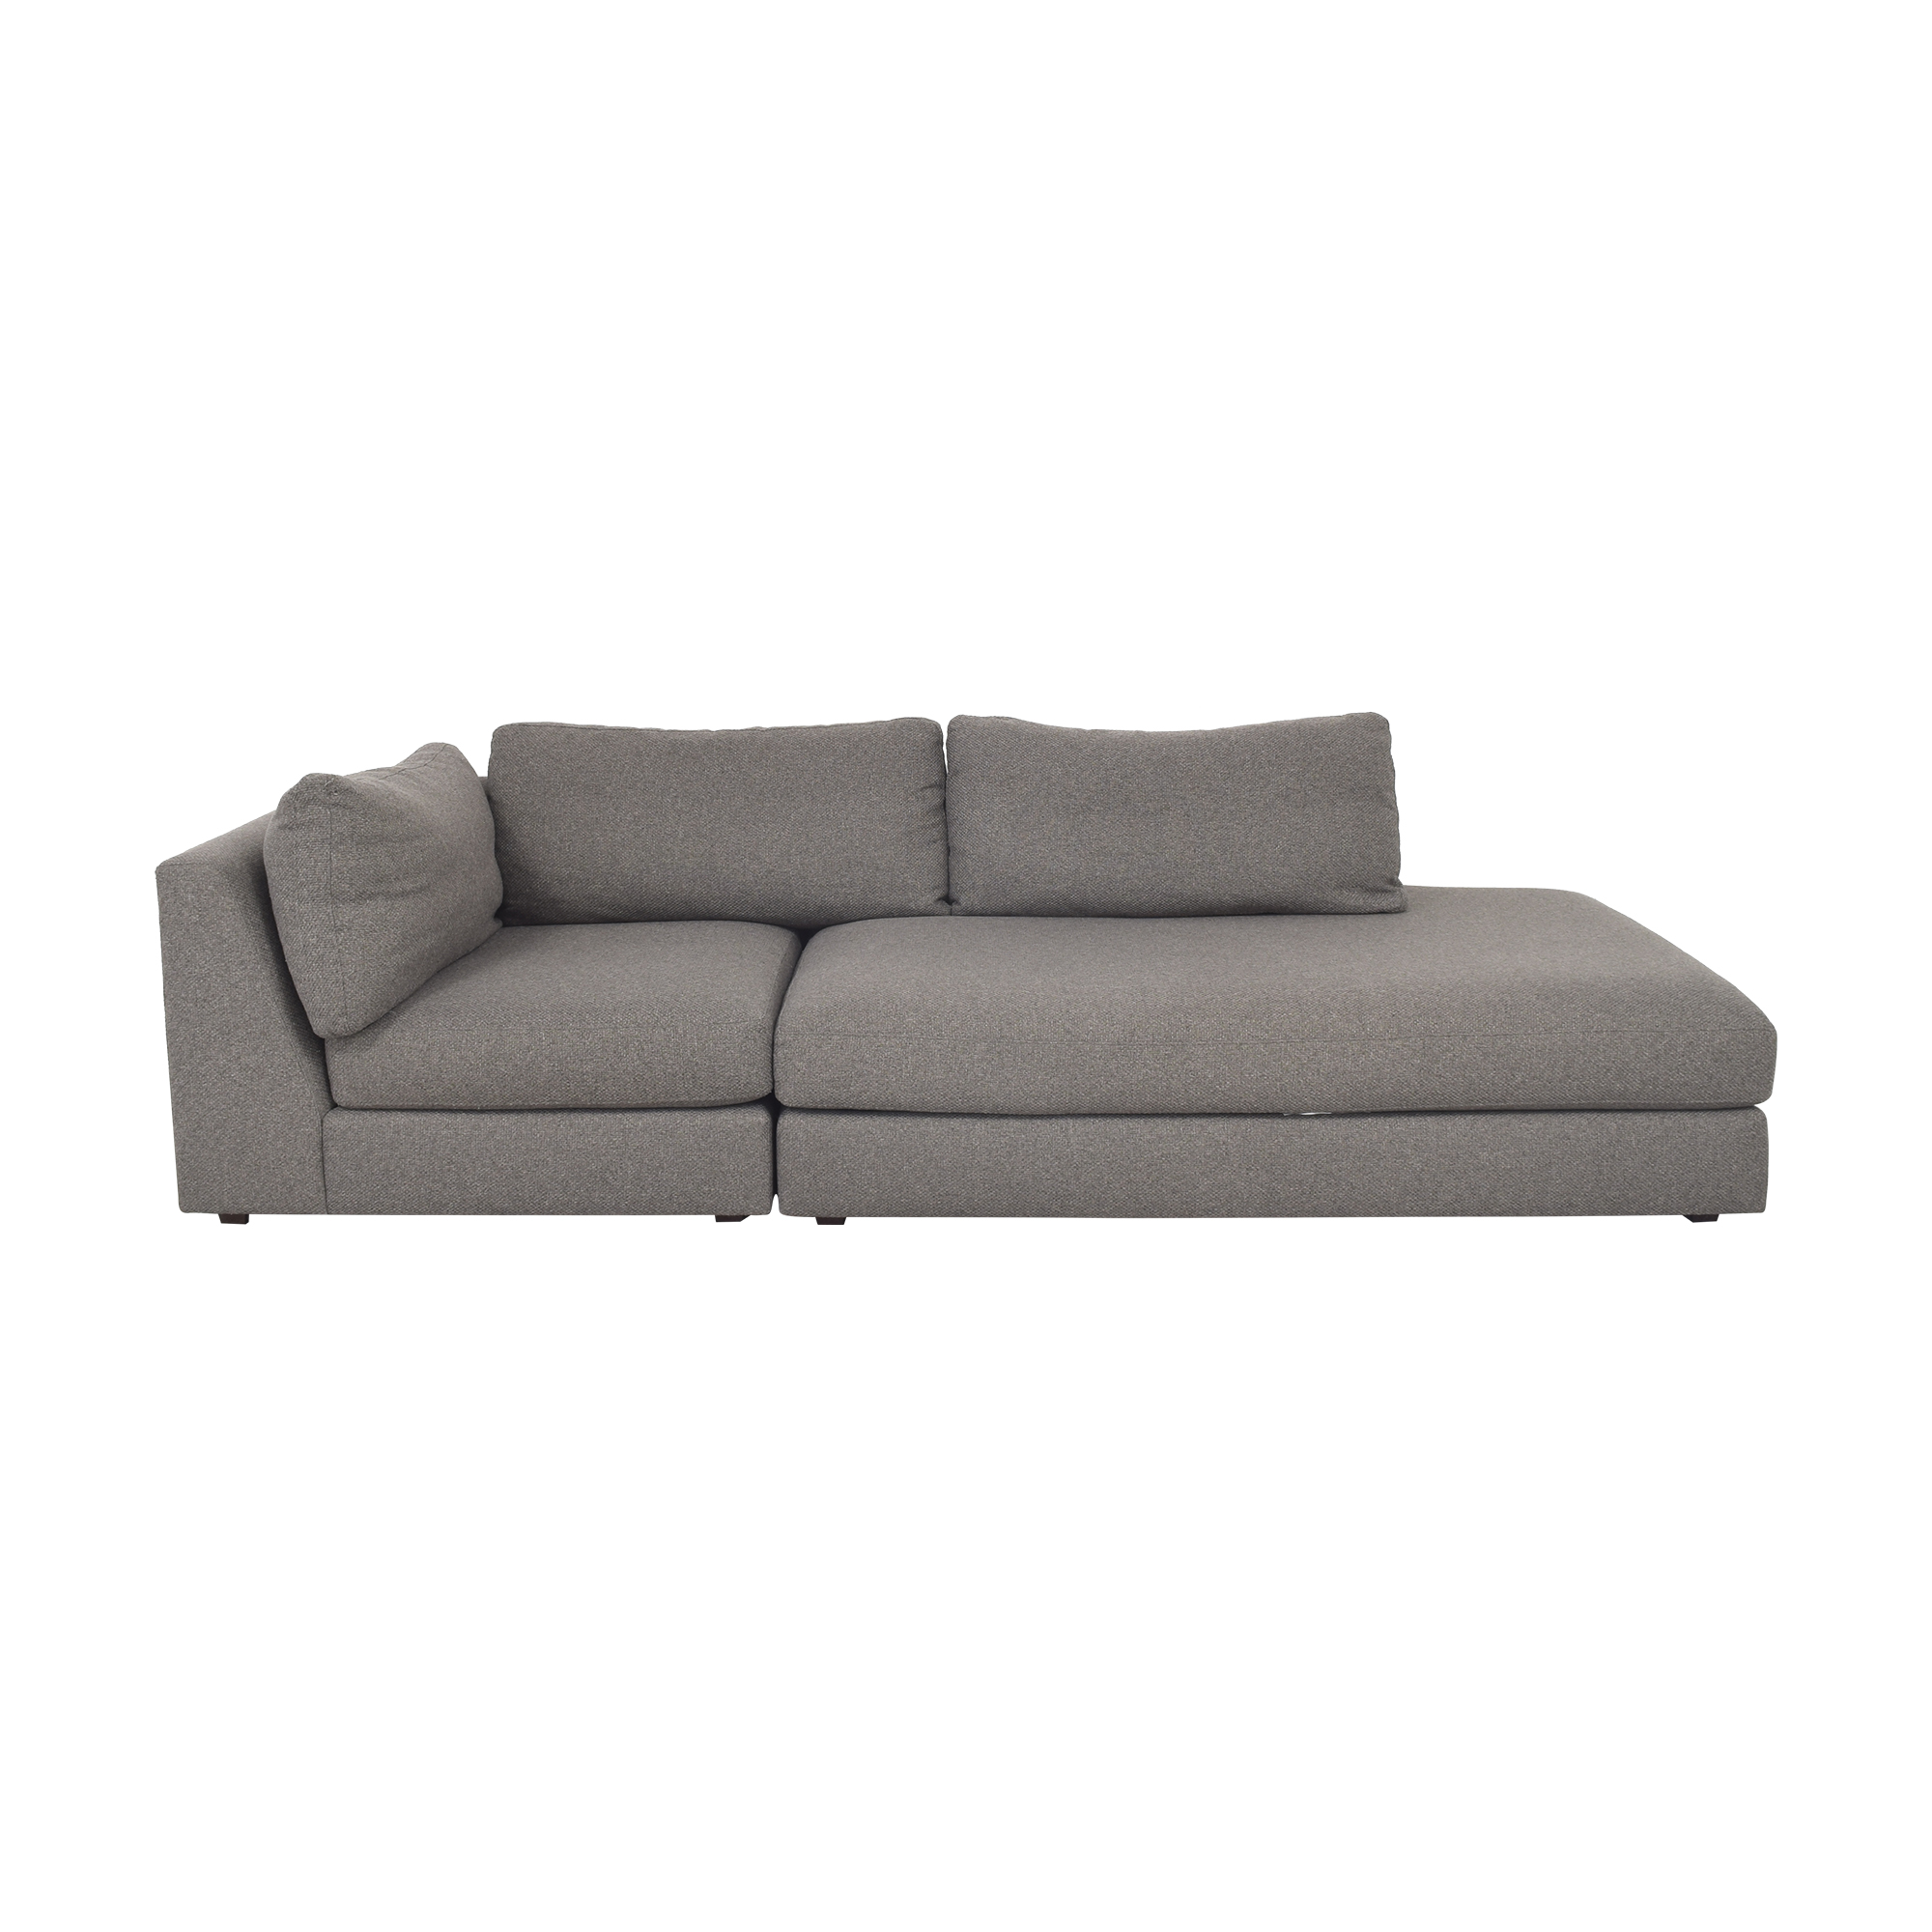 shop Crate & Barrel Two Piece Sectional Sofa Crate & Barrel Sectionals